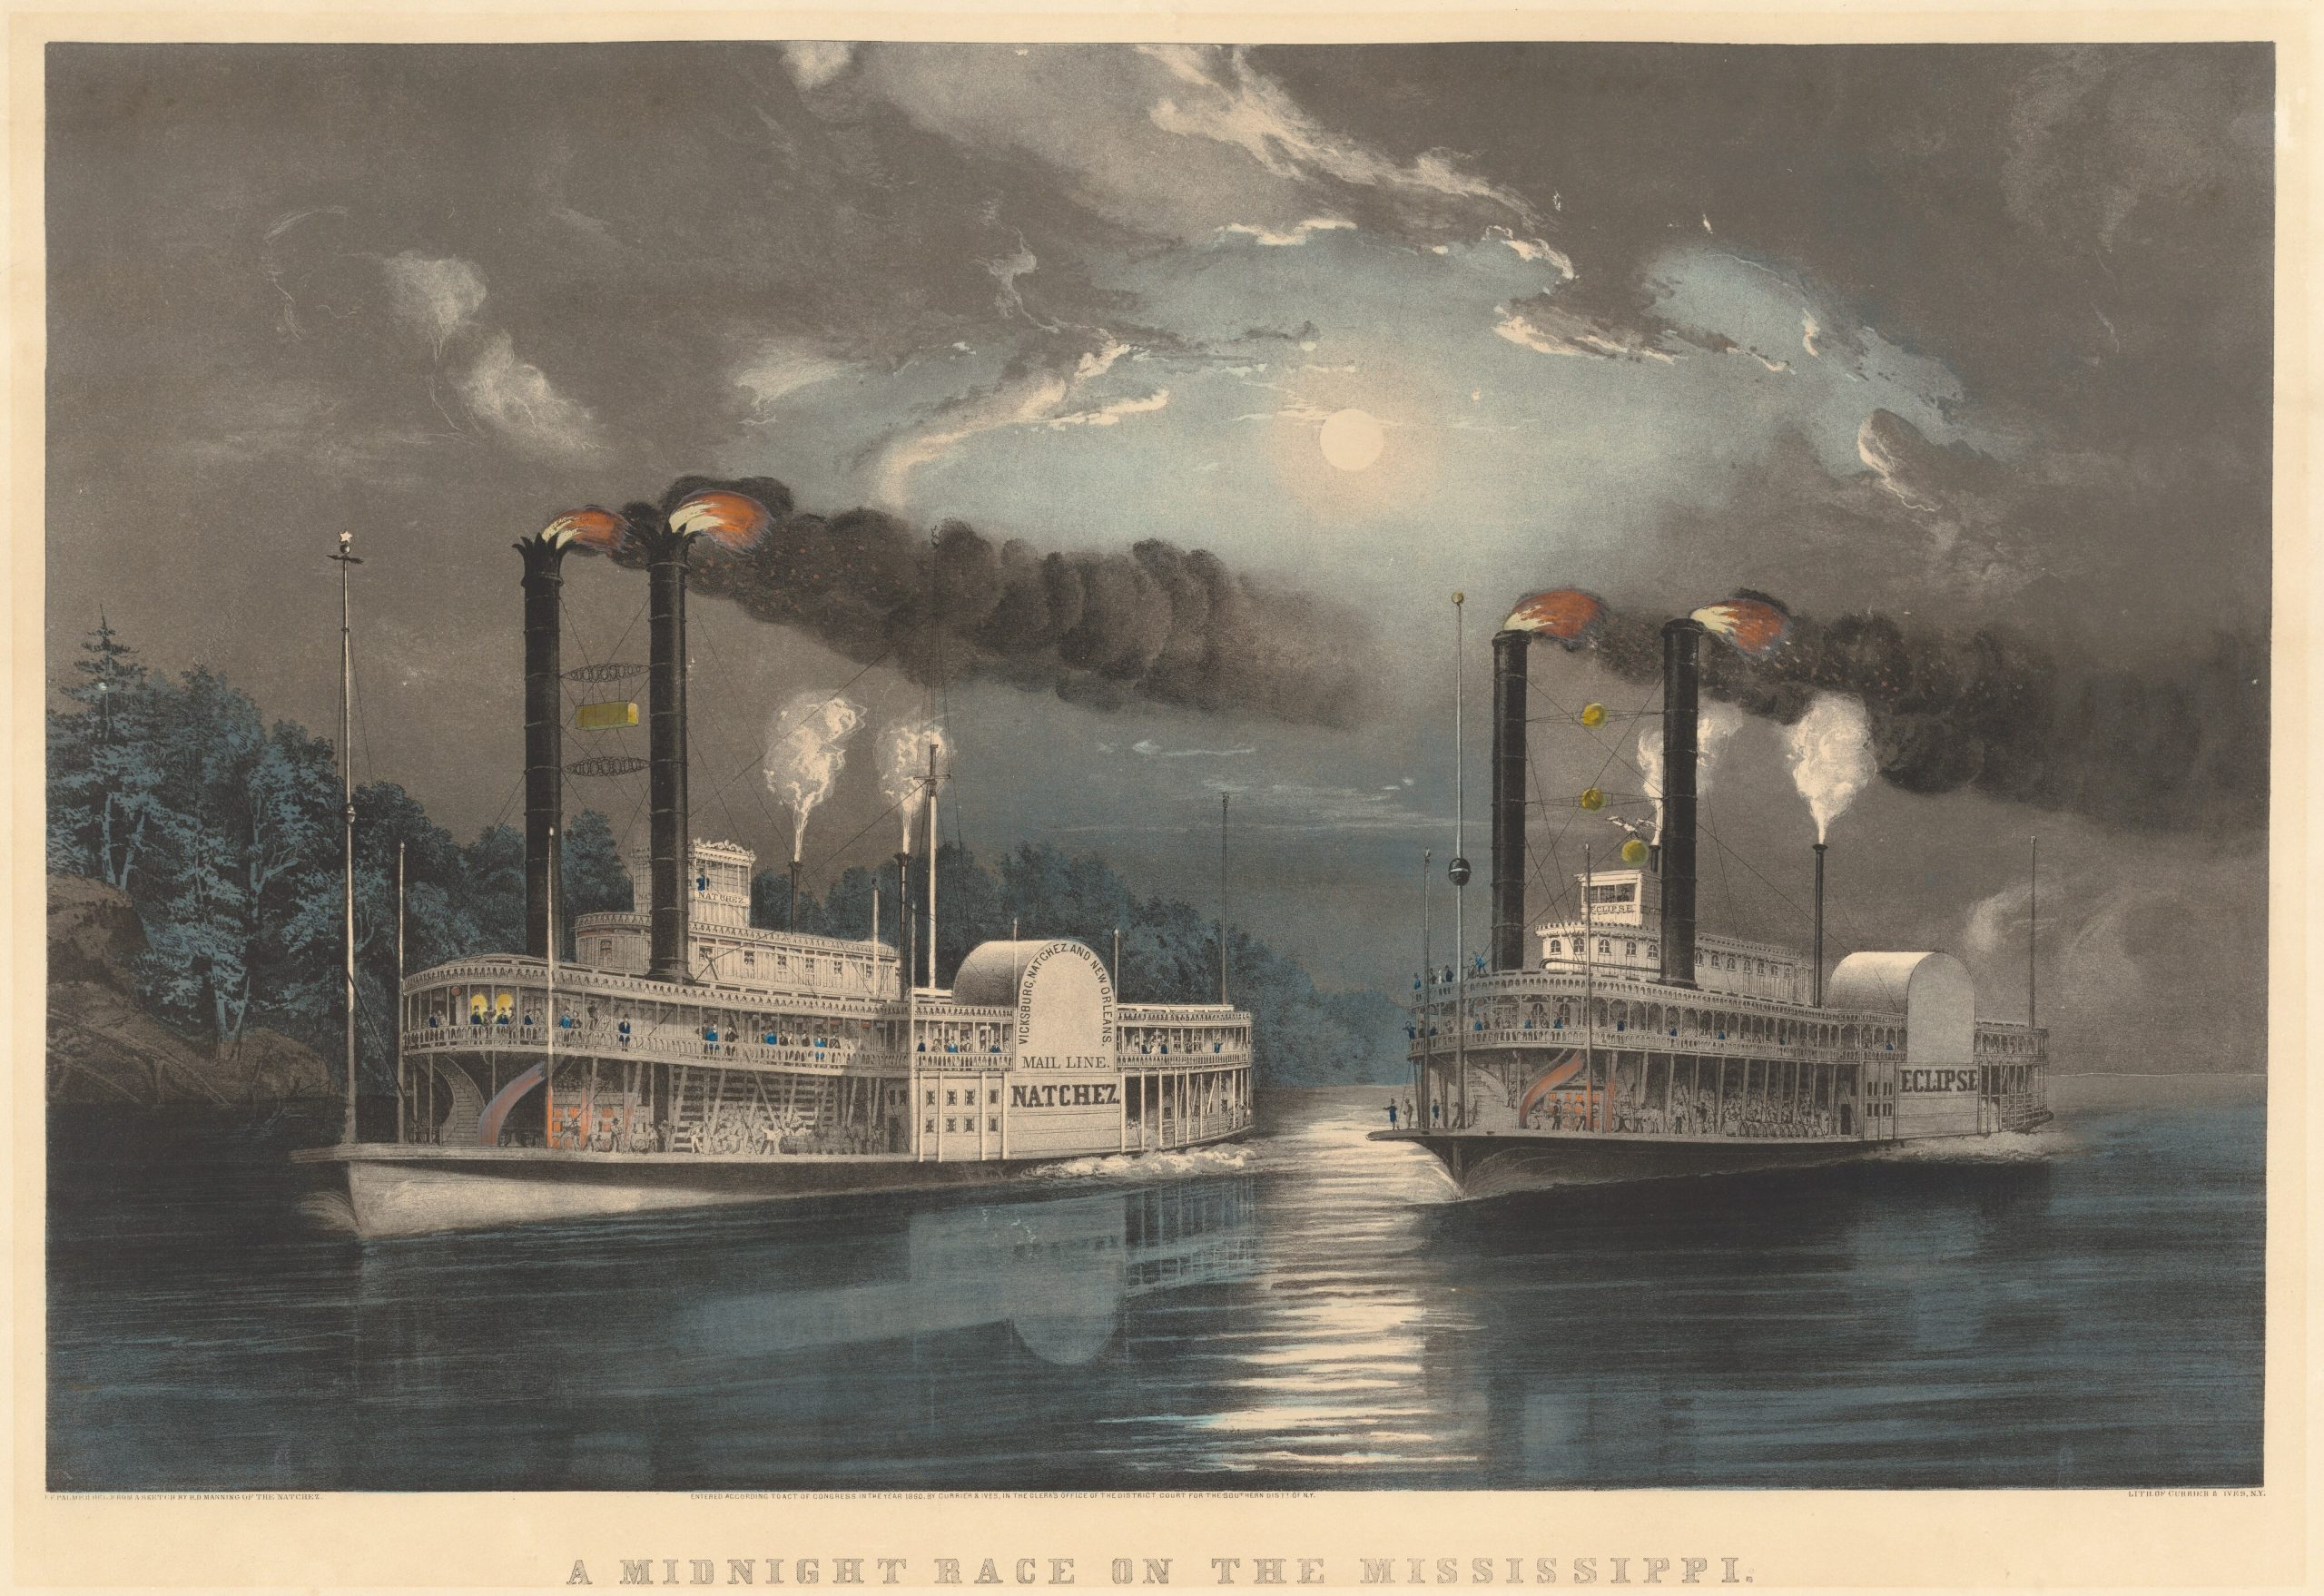 Currier & Ives, Midnight Race on the Mississippi